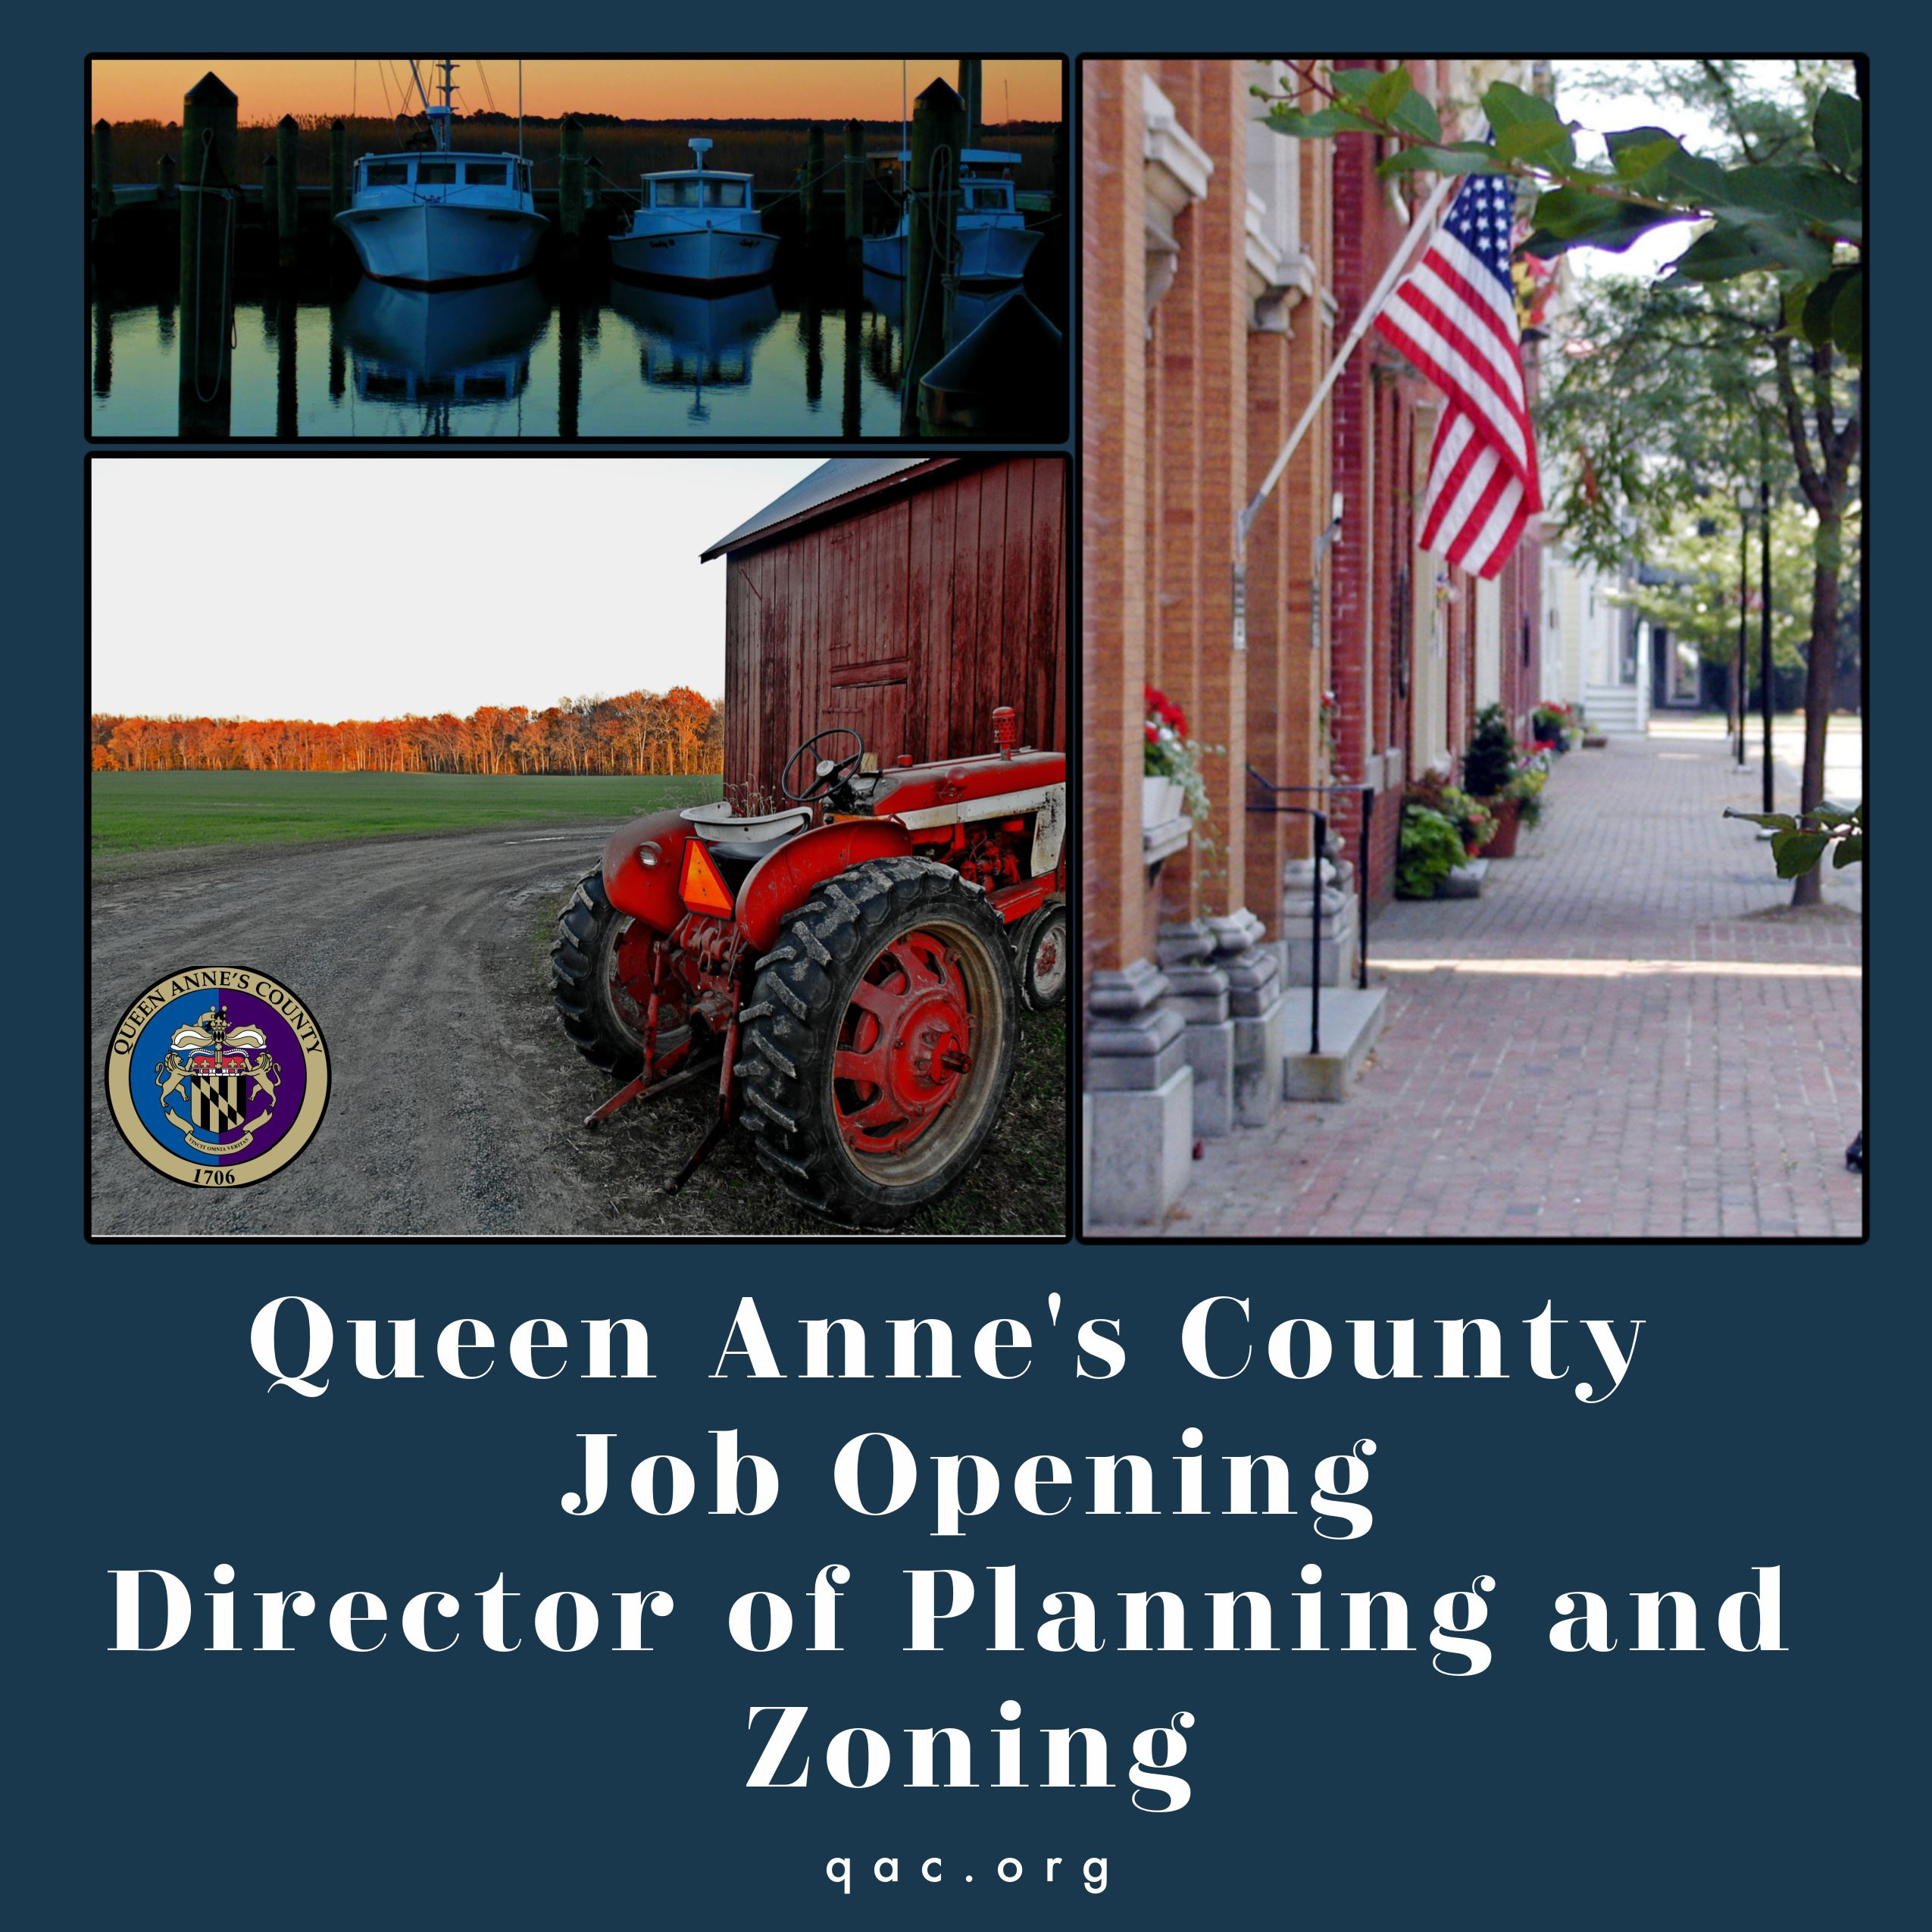 Planning and Zoning Director